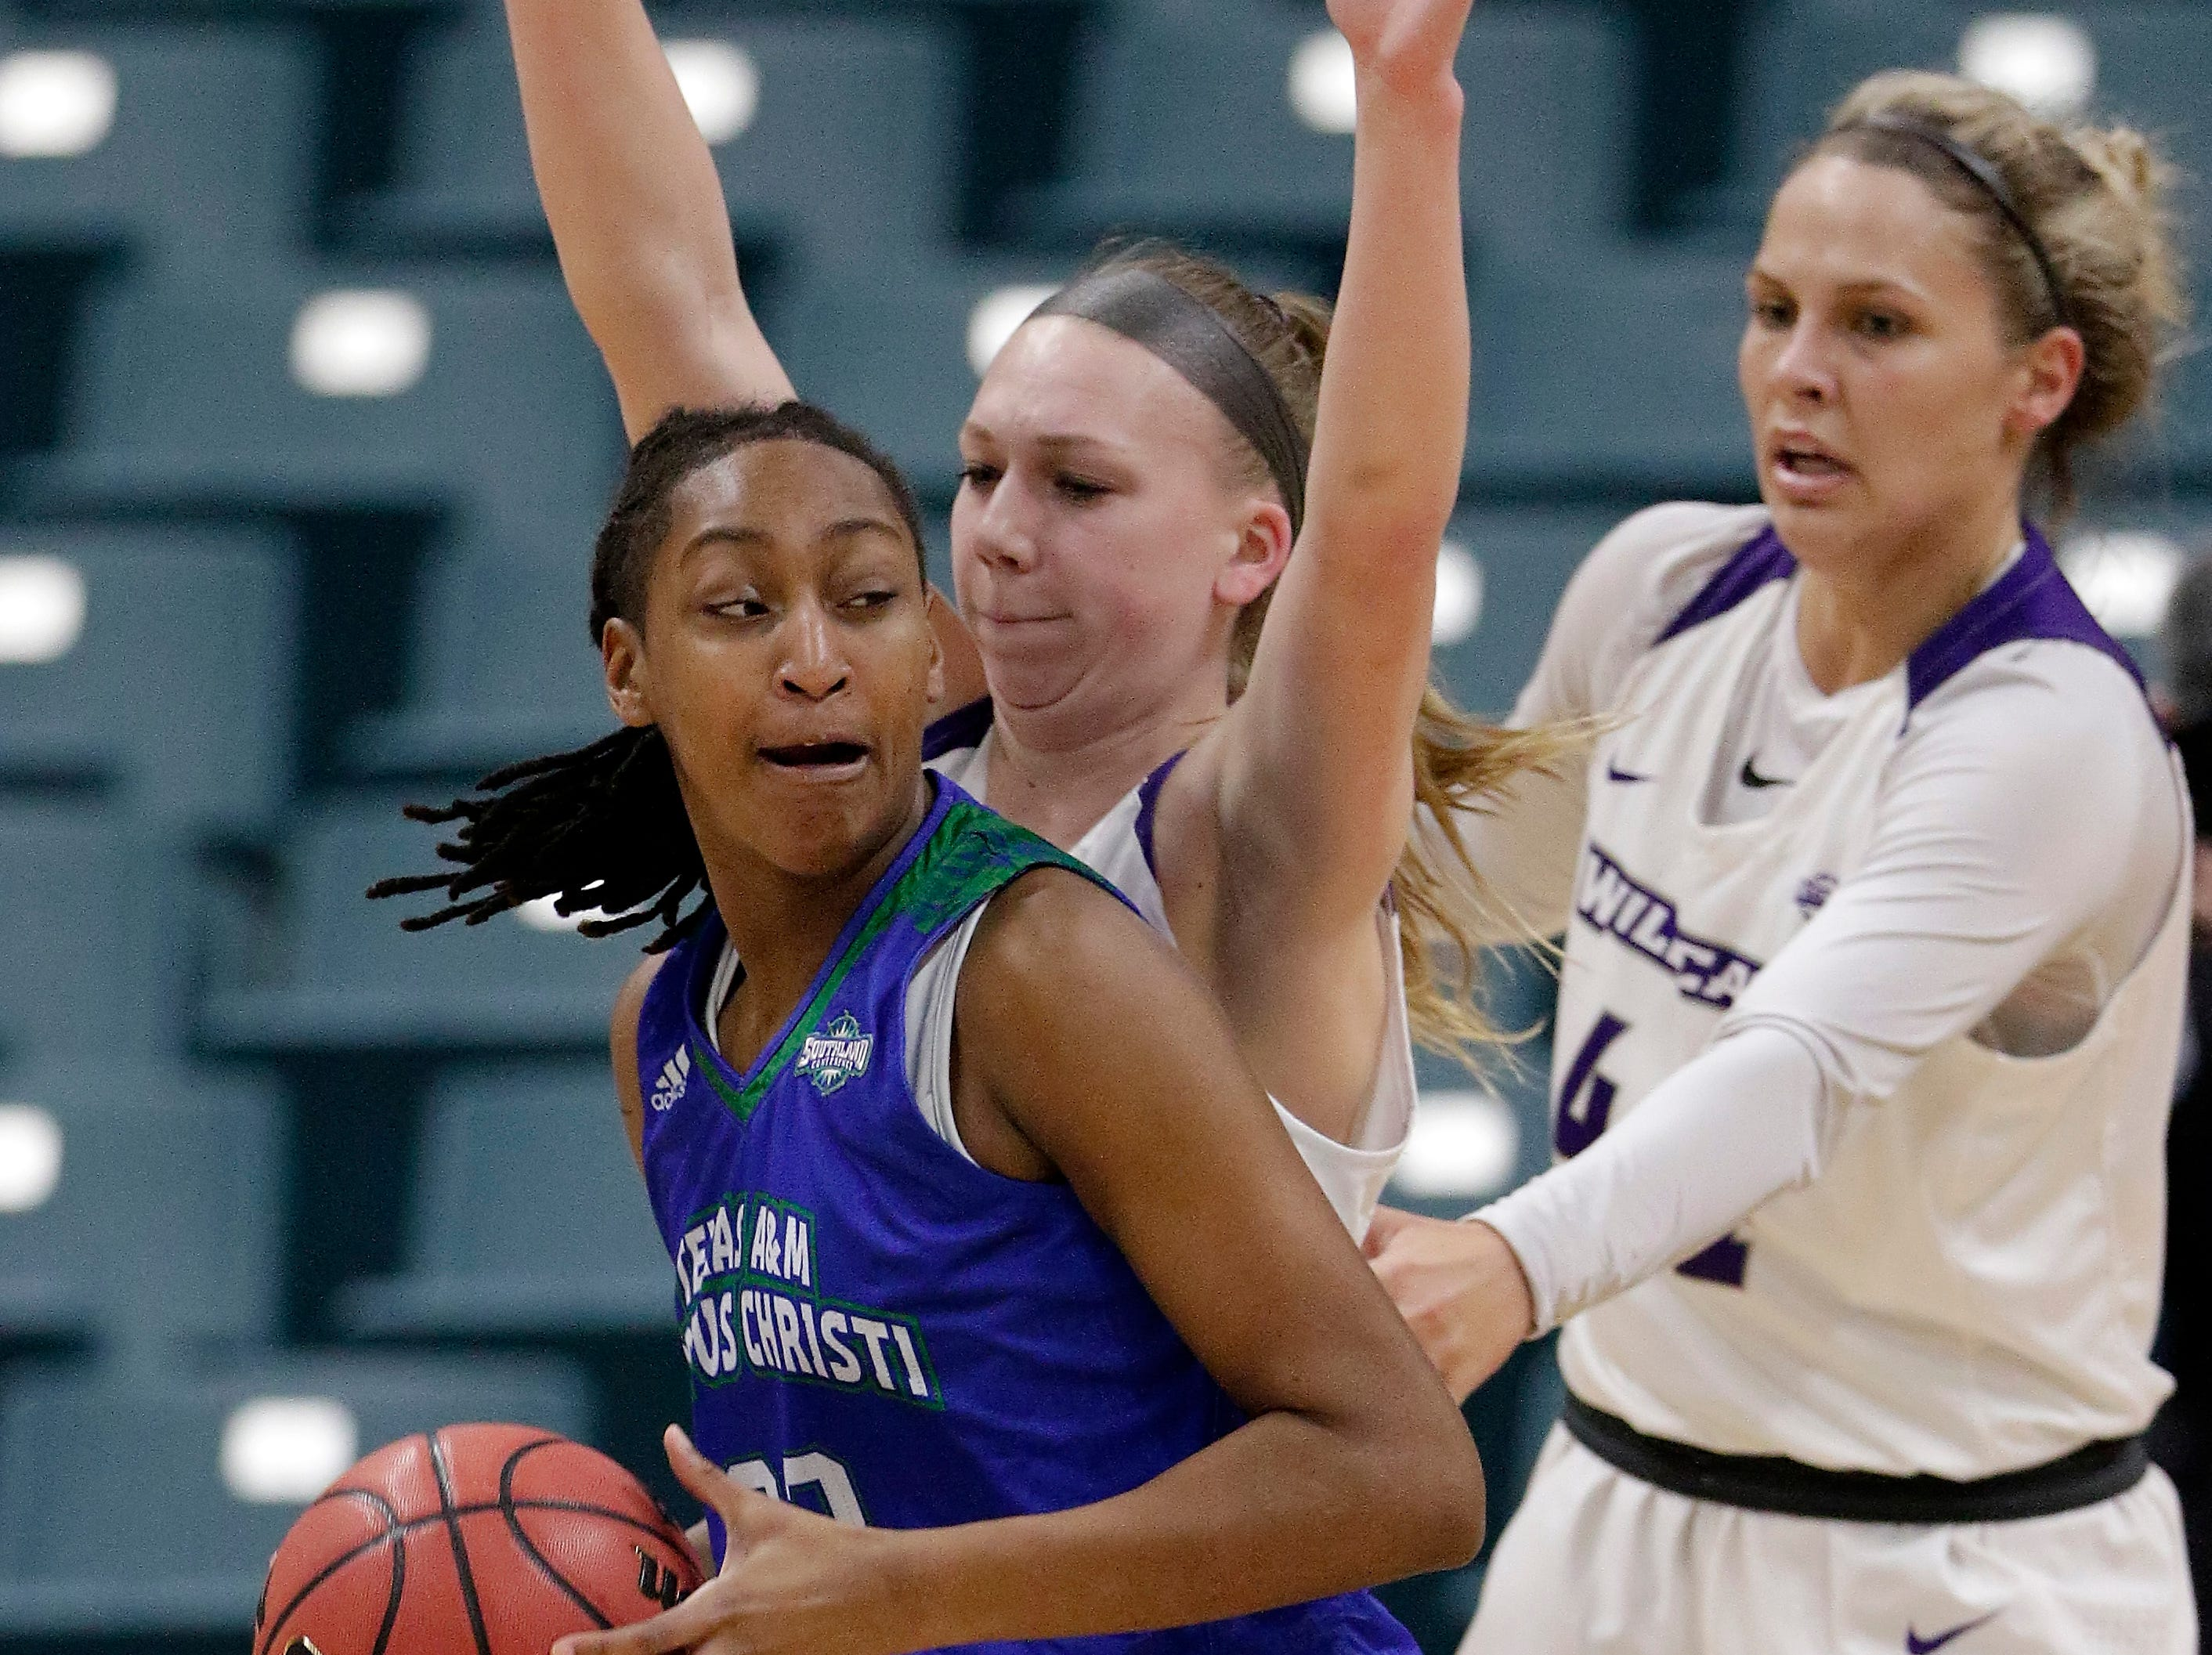 Texas A&M-Corpus Christi guard Dalesia Booth, left, turns to the basket in front of Abilene Christian guard Breanna Wright, middle, and forward Lexie Ducat, right, during the first half of the Southland Conference women's tournament title Sunday, March 17, 2019, in Katy.